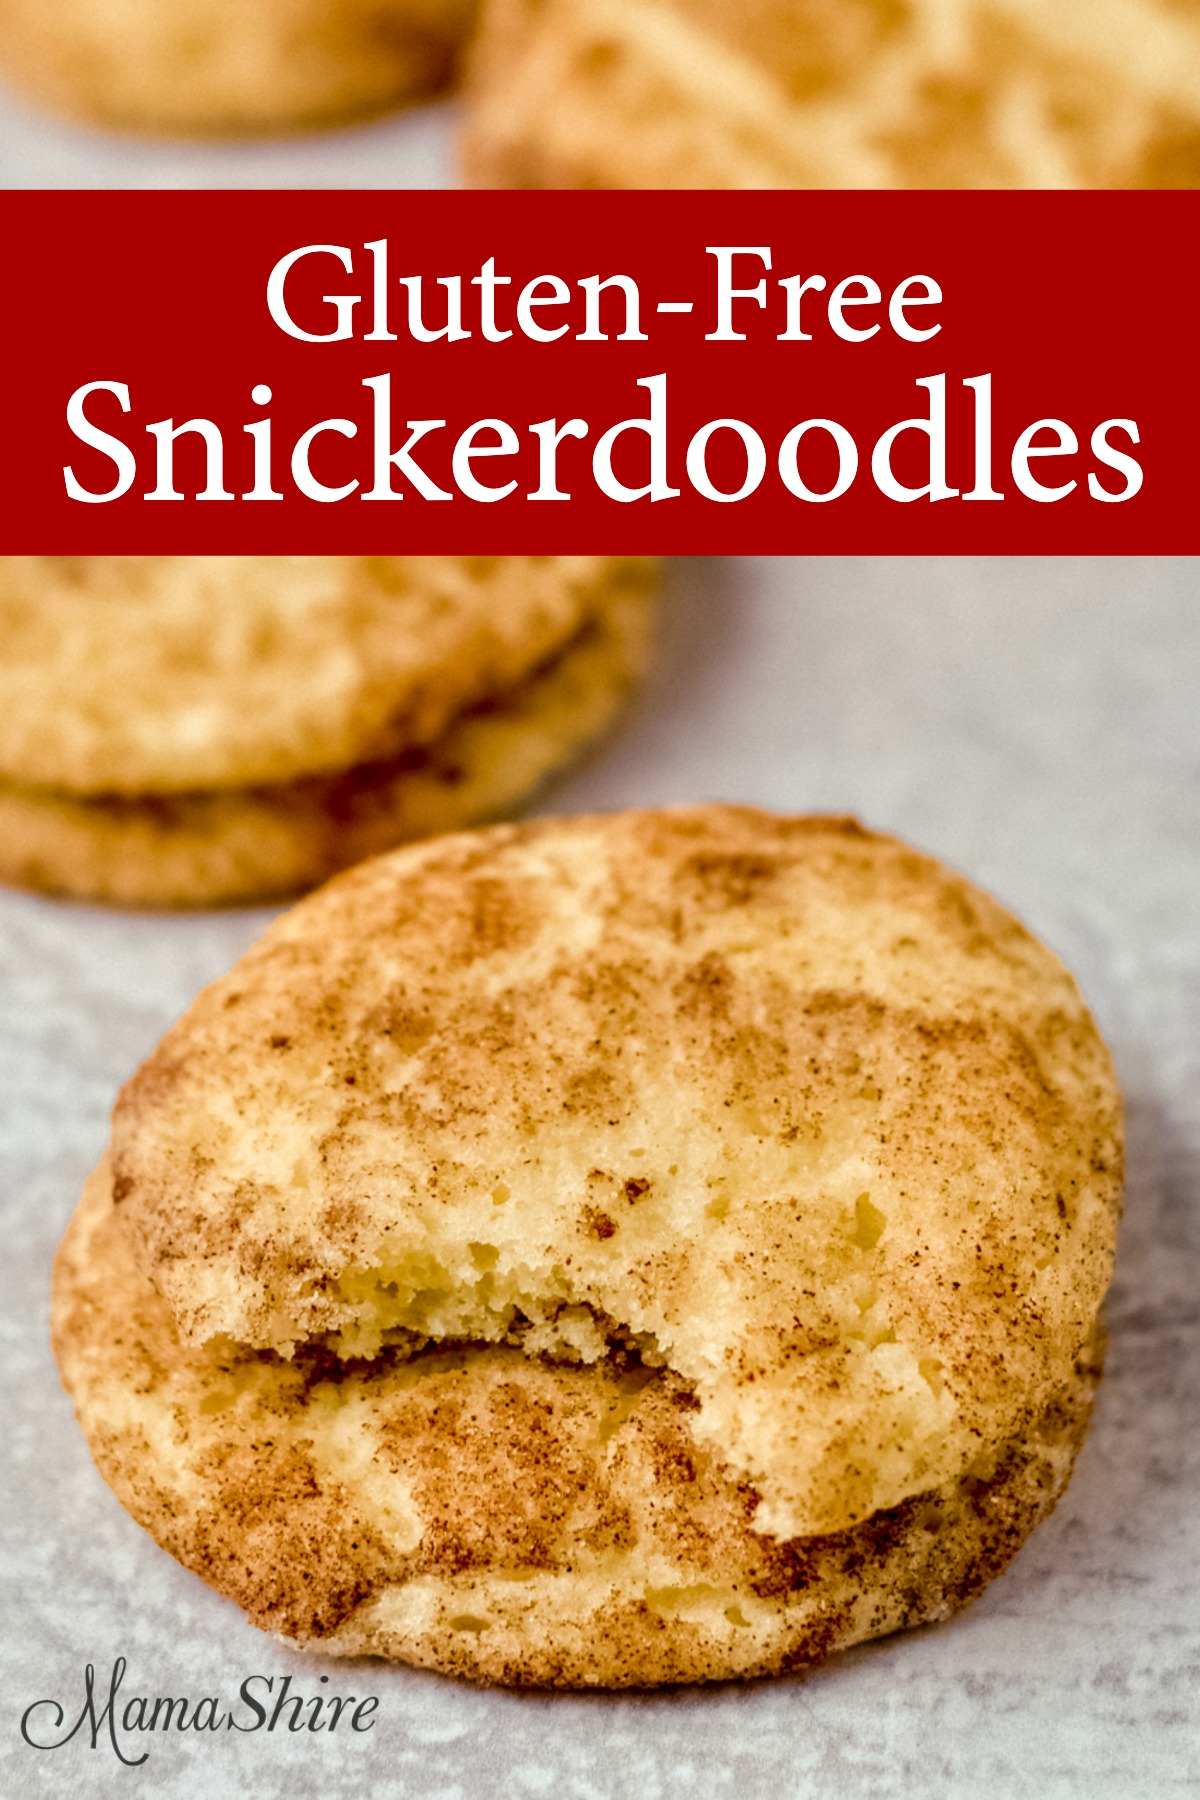 Gluten-free snickerdoodle recipe that makes these soft and tender cookies. One has a bite taken out of it.